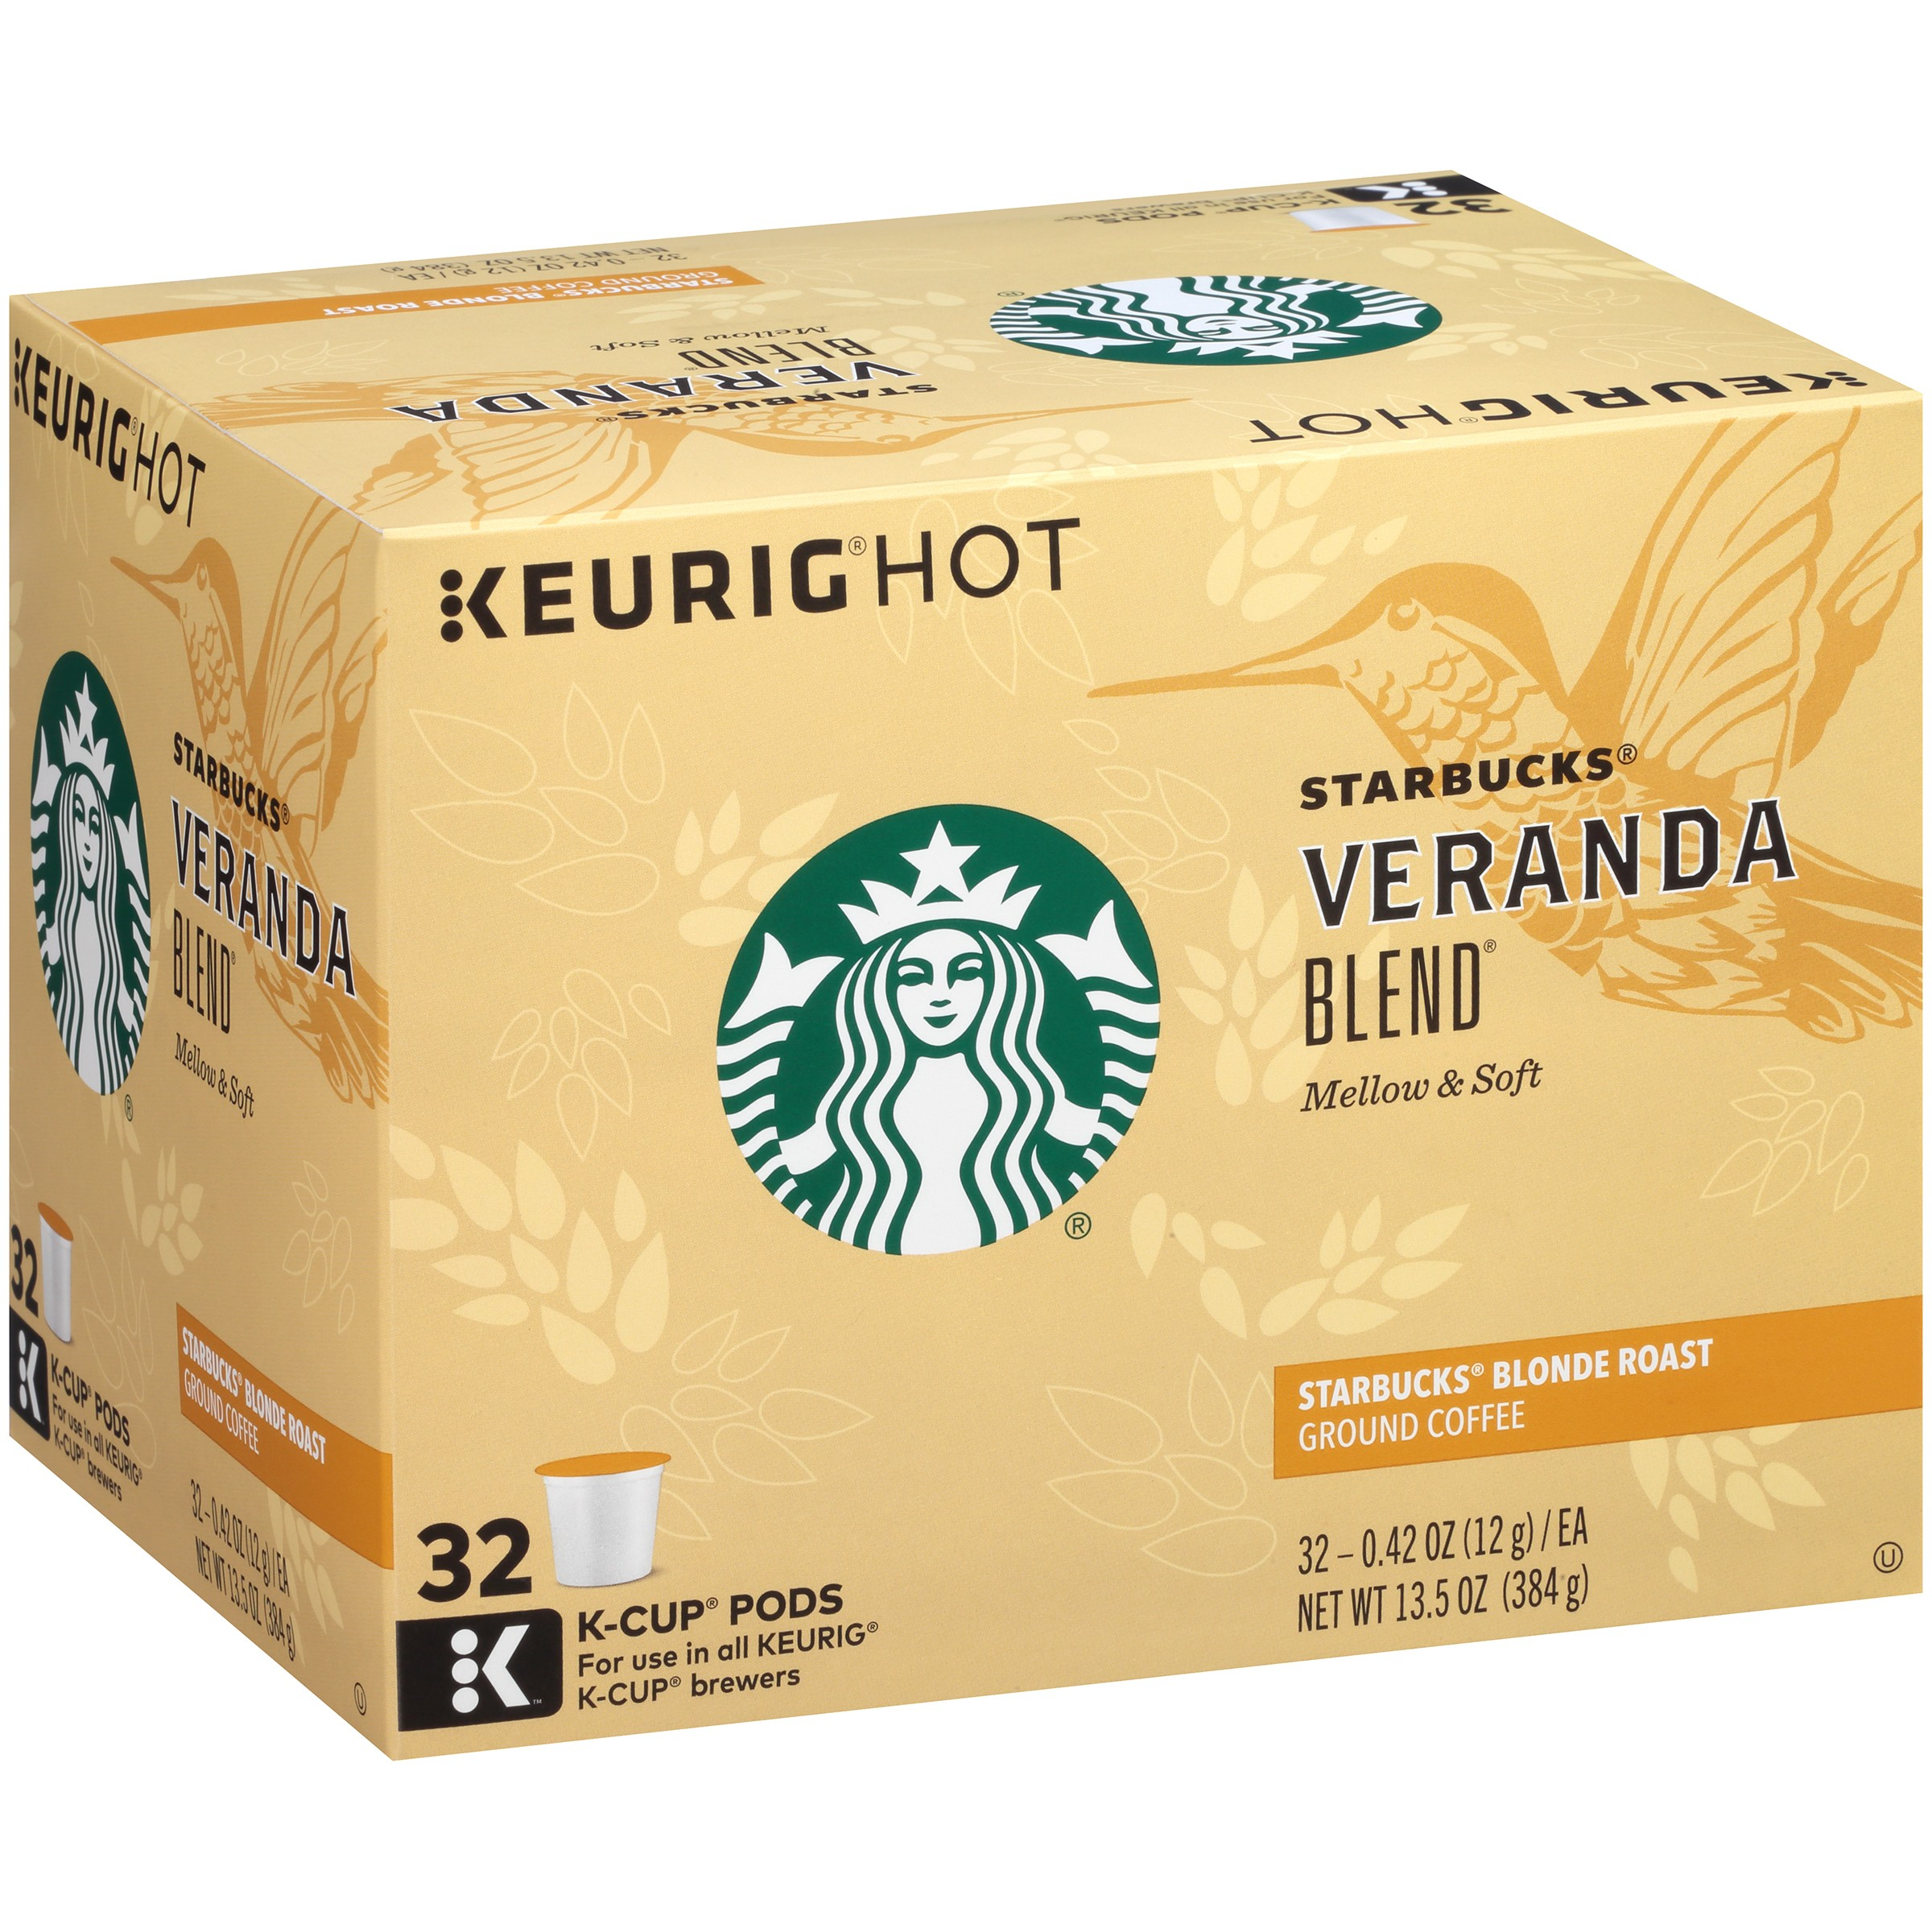 Starbucks® Veranda Blend Blonde Roast Ground Coffee K-Cups 32 ct Box